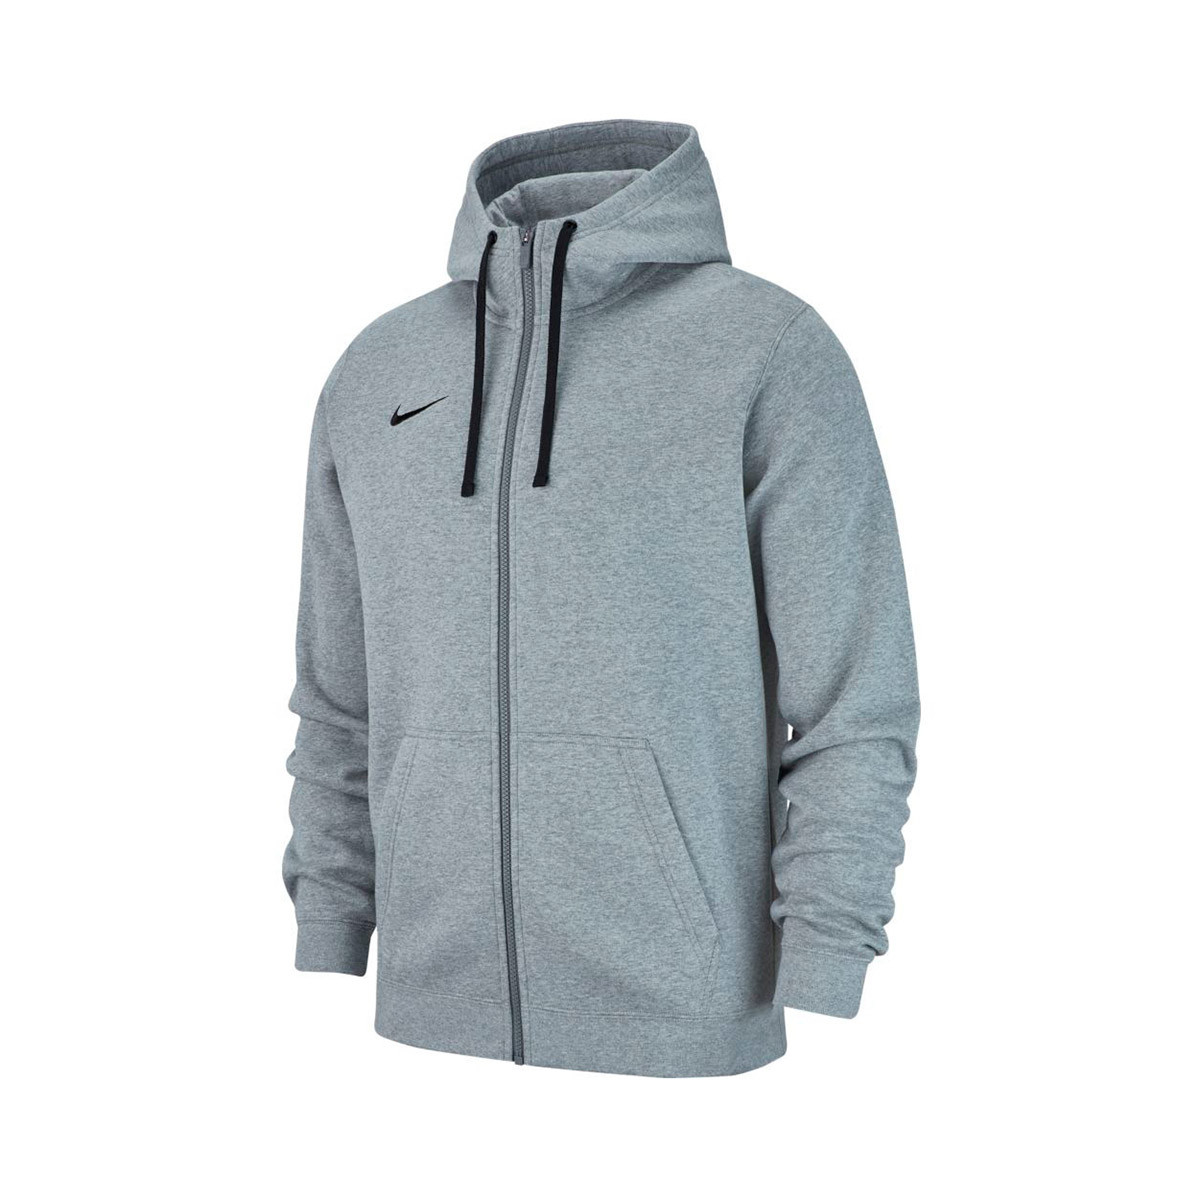 6087c255e1810 Chaqueta Nike Club 19 Full-Zip Hoodie Niño Dark grey heather-Dark steel  grey-Black - Tienda de fútbol Fútbol Emotion